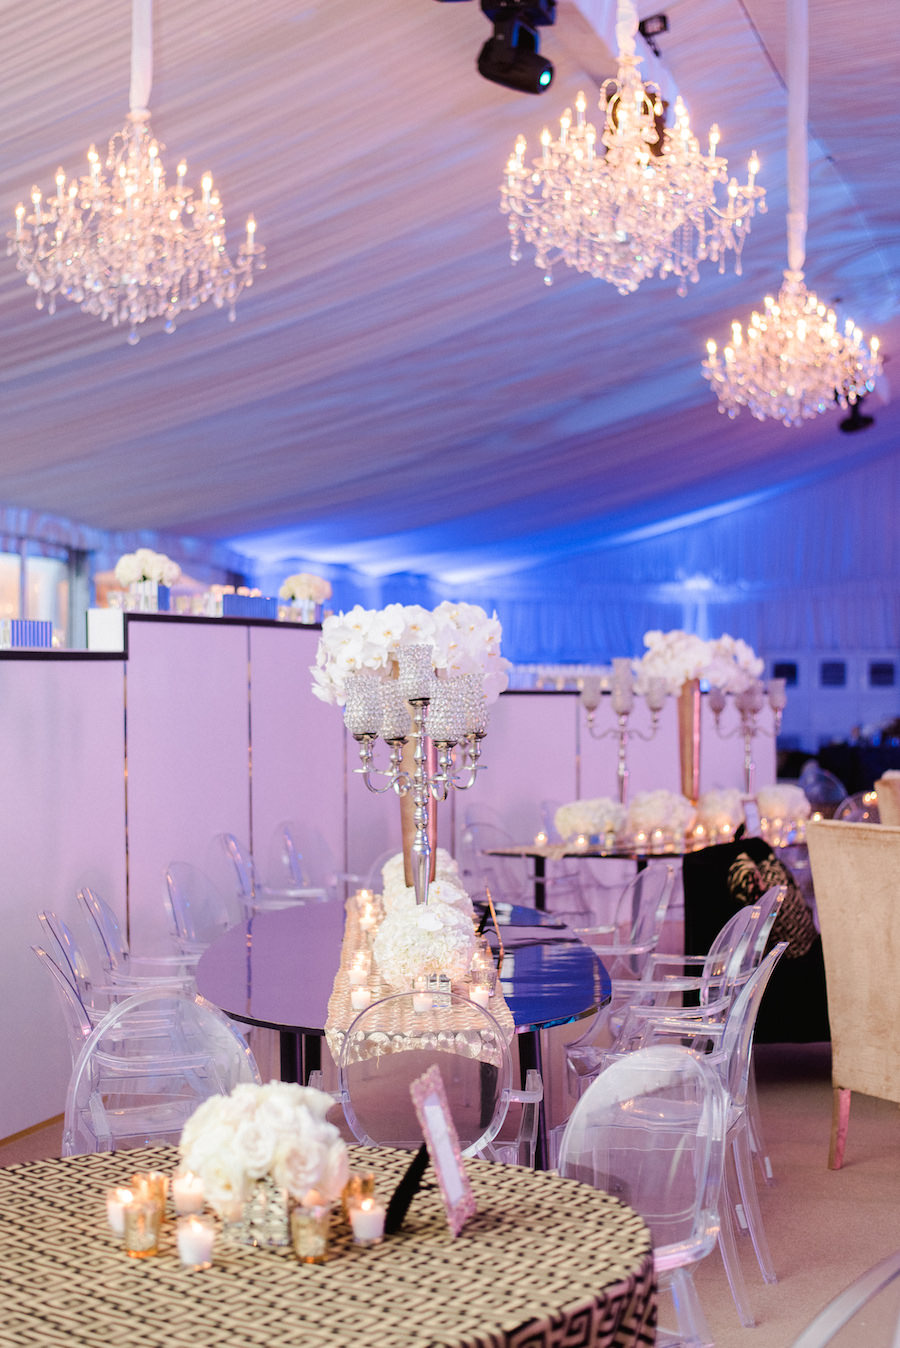 Wedding Reception Decor with White Floral Centerpieces on Gold Specialty Linen with Crystal Chandeliers and Lucite Chairs | Flowers by Andrea Layne Floral Design | Linens by Connie Duglin Linens | Downtown Tampa Wedding Photography by Ailyn La Torre Photography